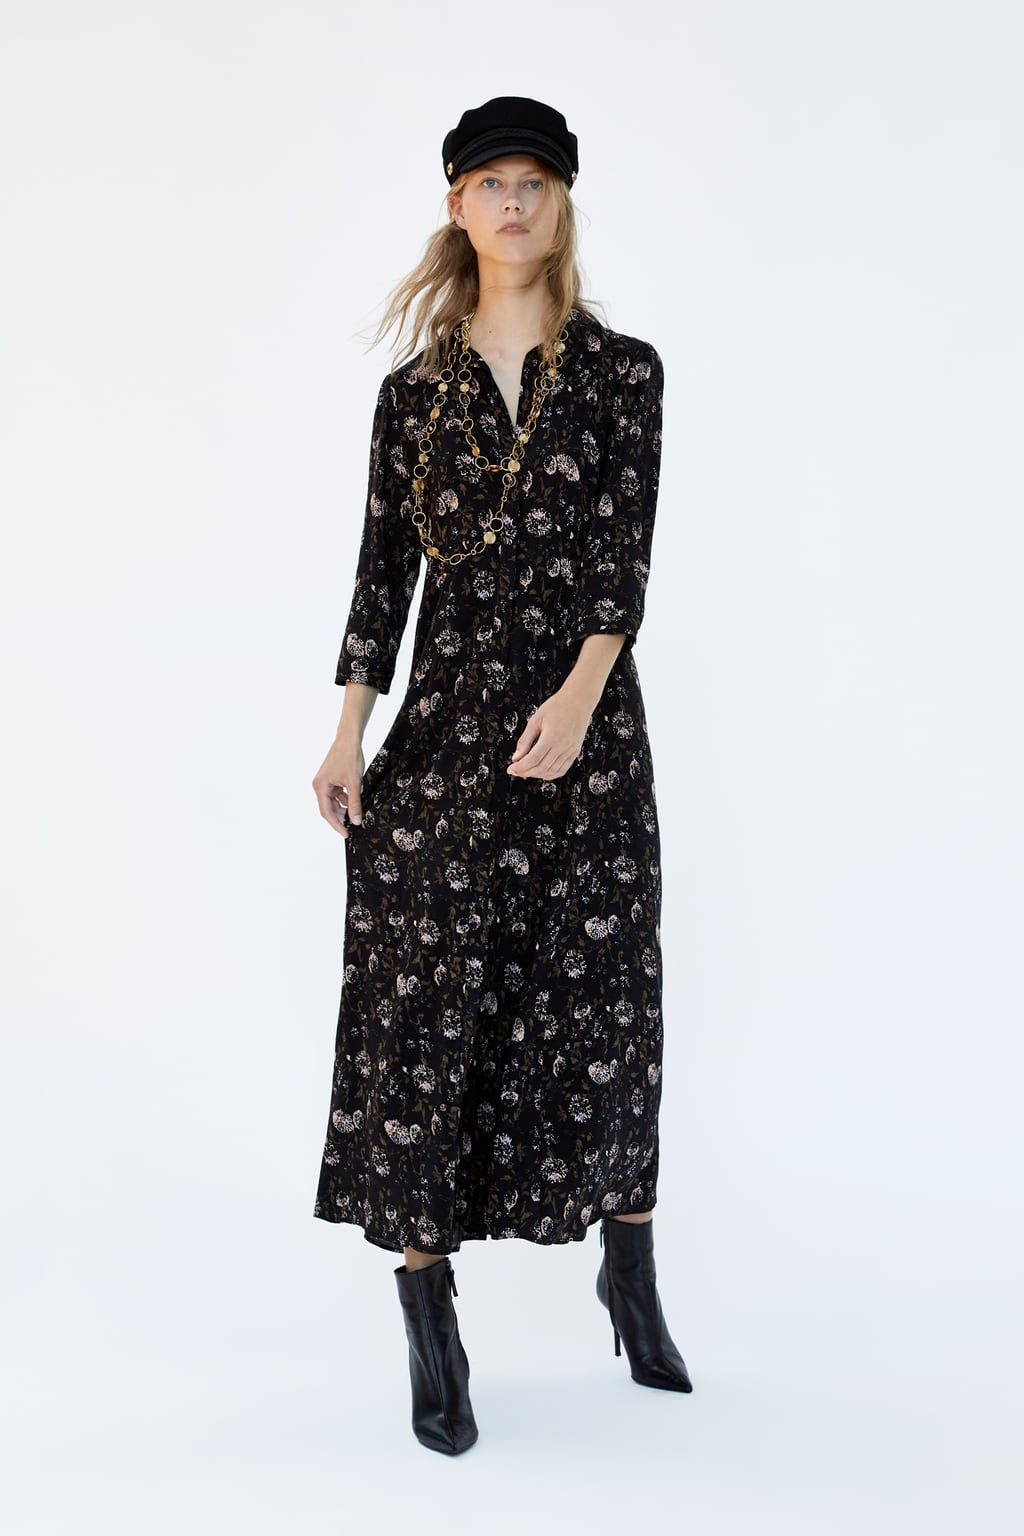 931b2d3d Image 1 of FLORAL PRINT SHIRT DRESS from Zara | Style in 2019 ...